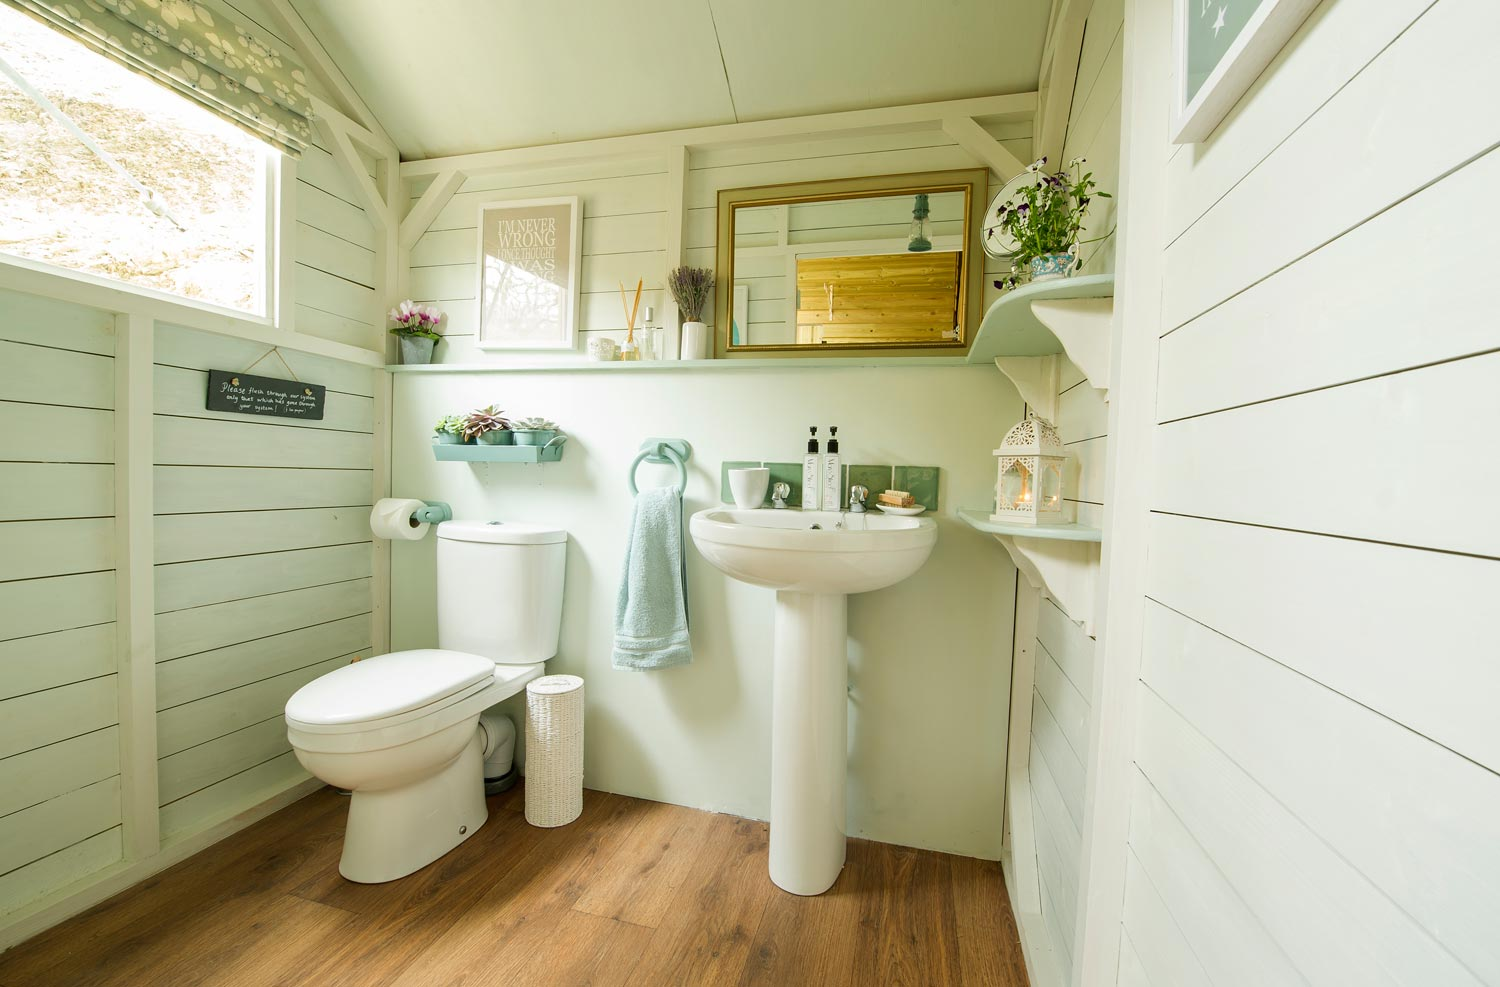 Clean and Cosy Bathrooms at Longlands Glamping